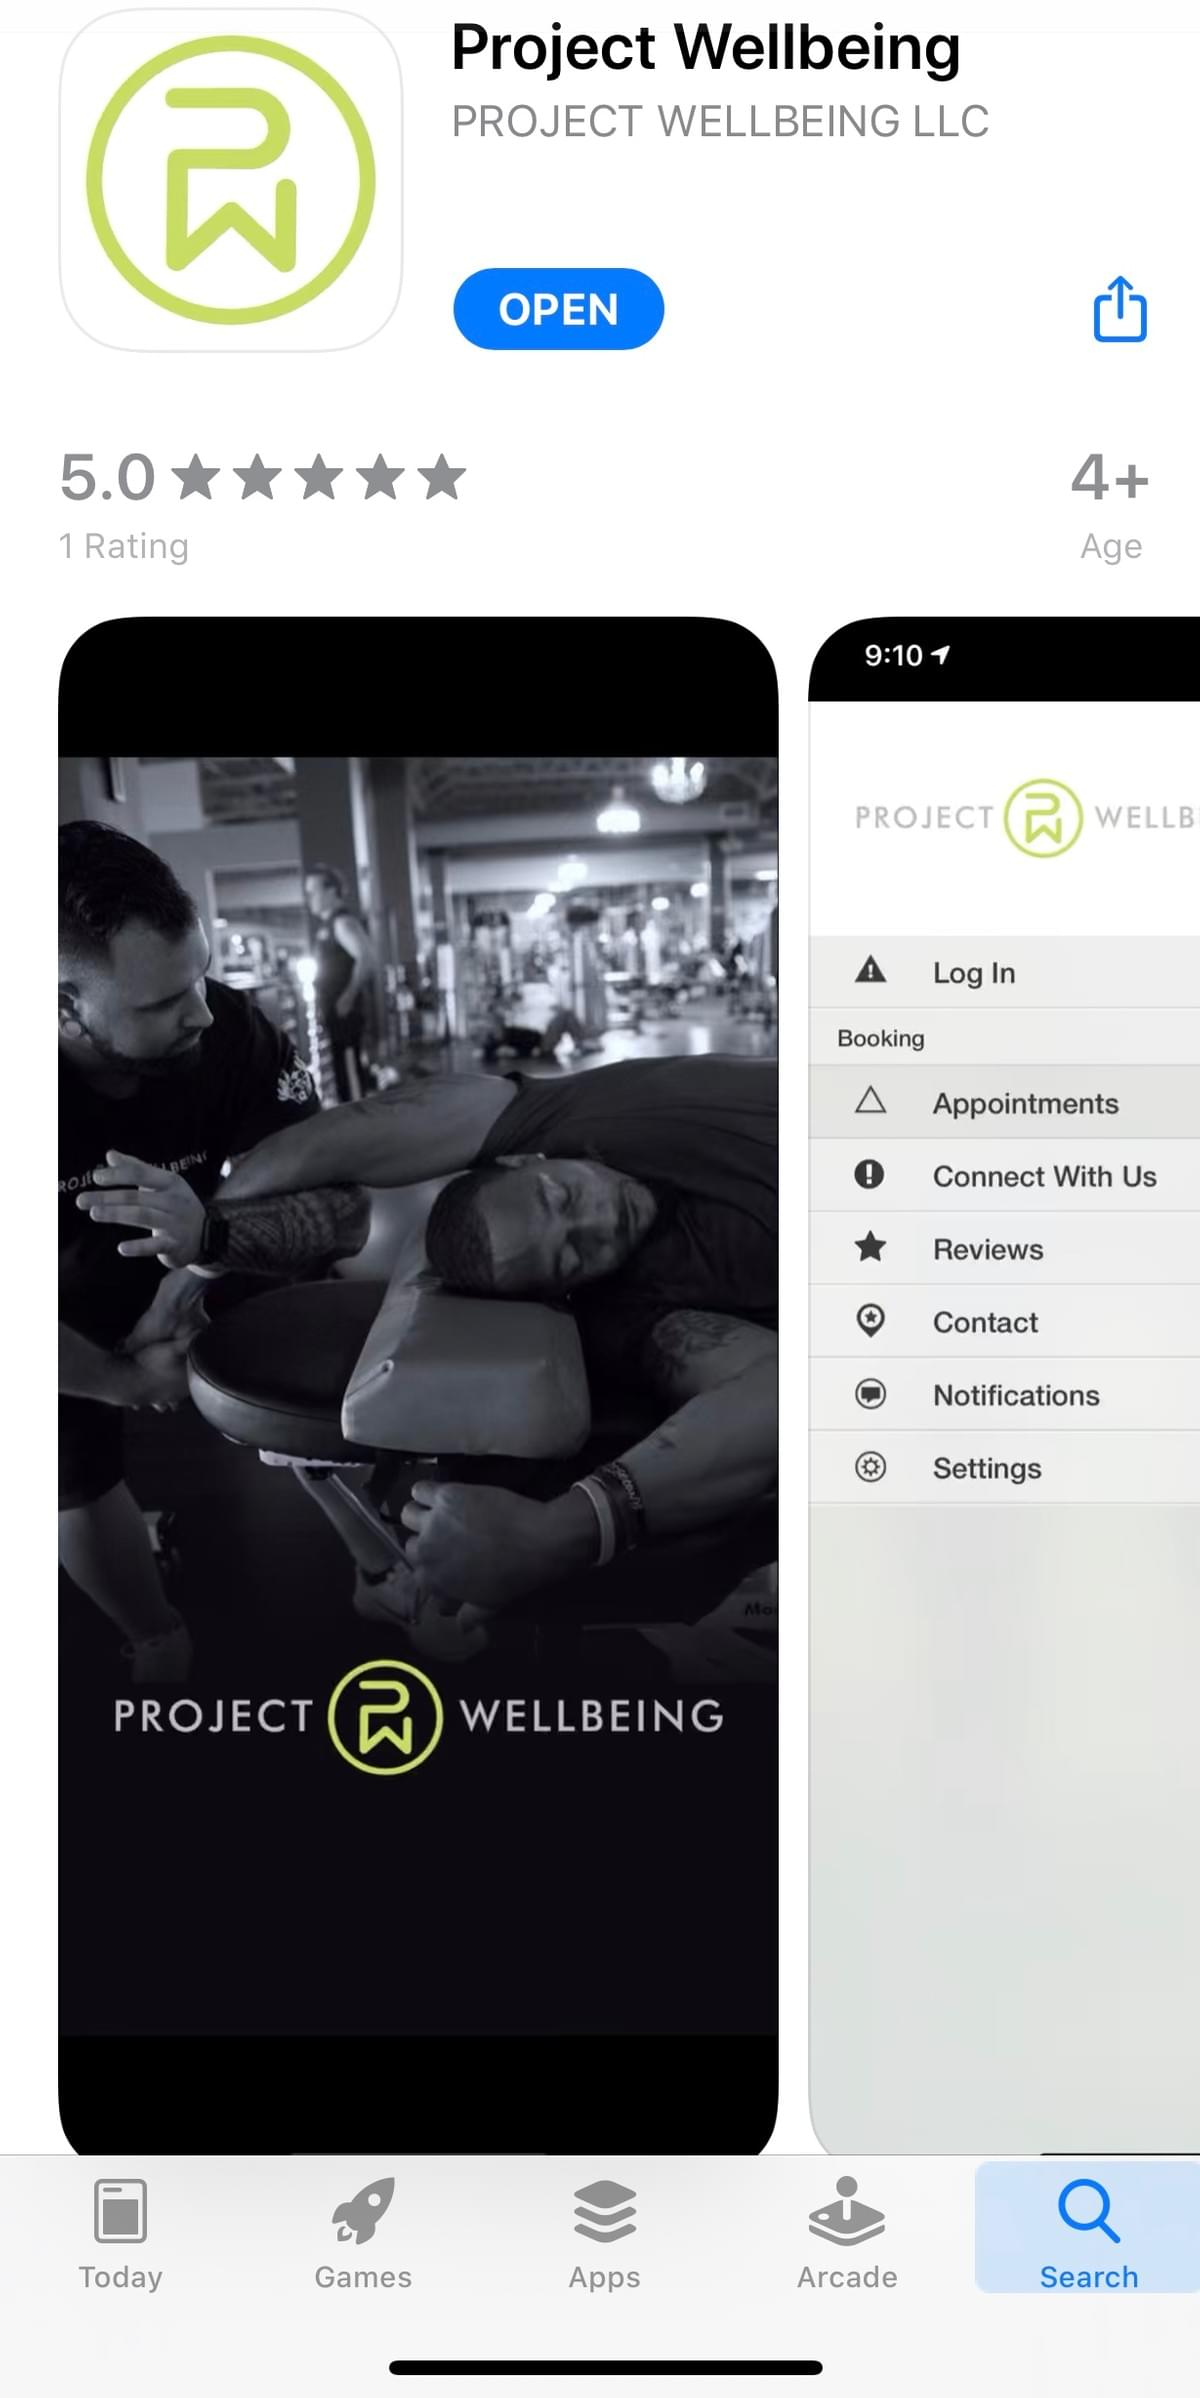 Project Wellbeing LLC Las Vegas